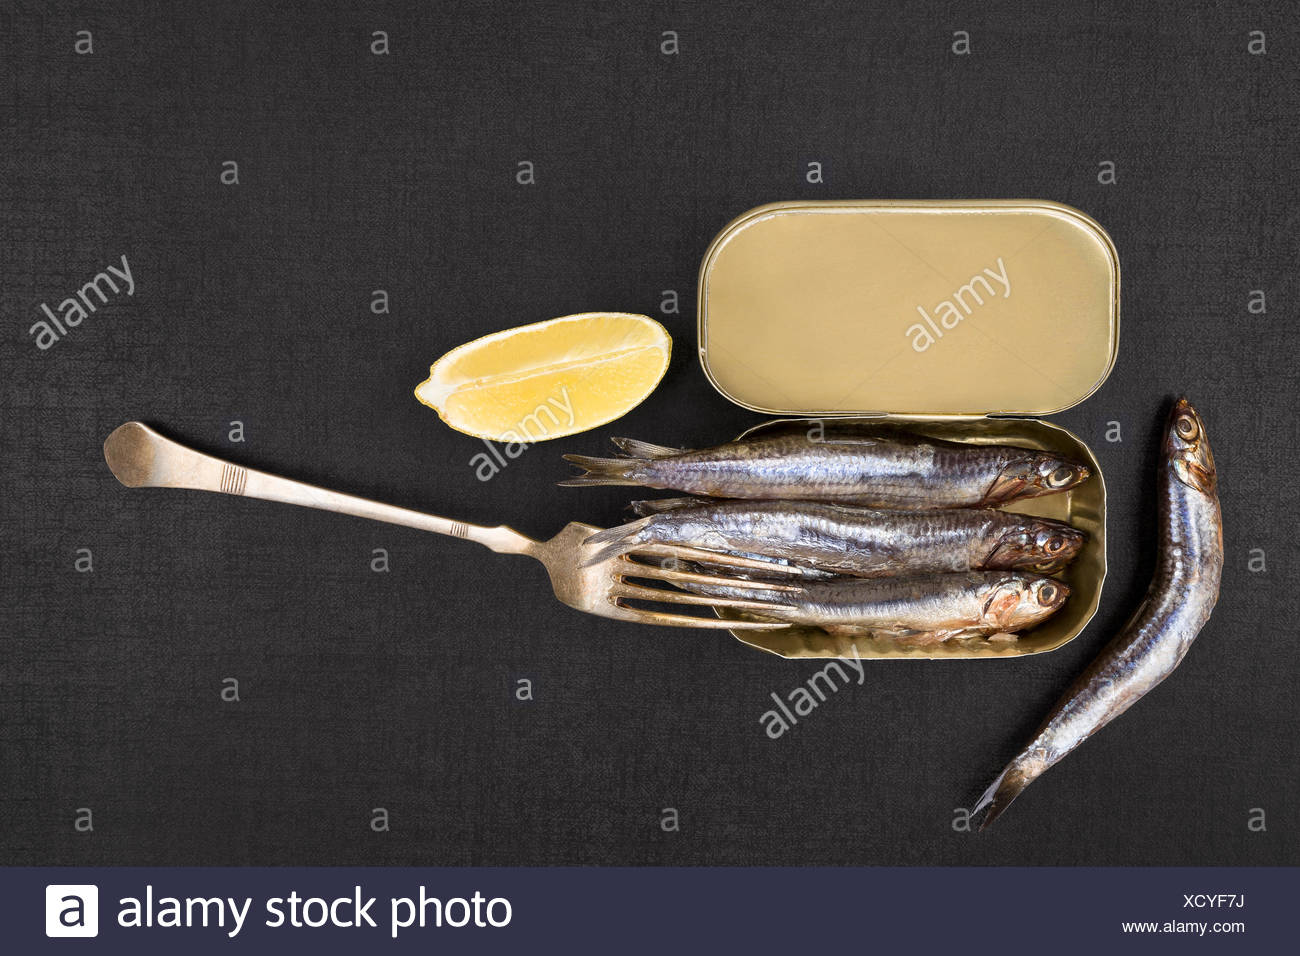 food aliment isolated closeup horizontal angle fish golden steel metal traditional open tin gourmet dish meal container - Stock Image